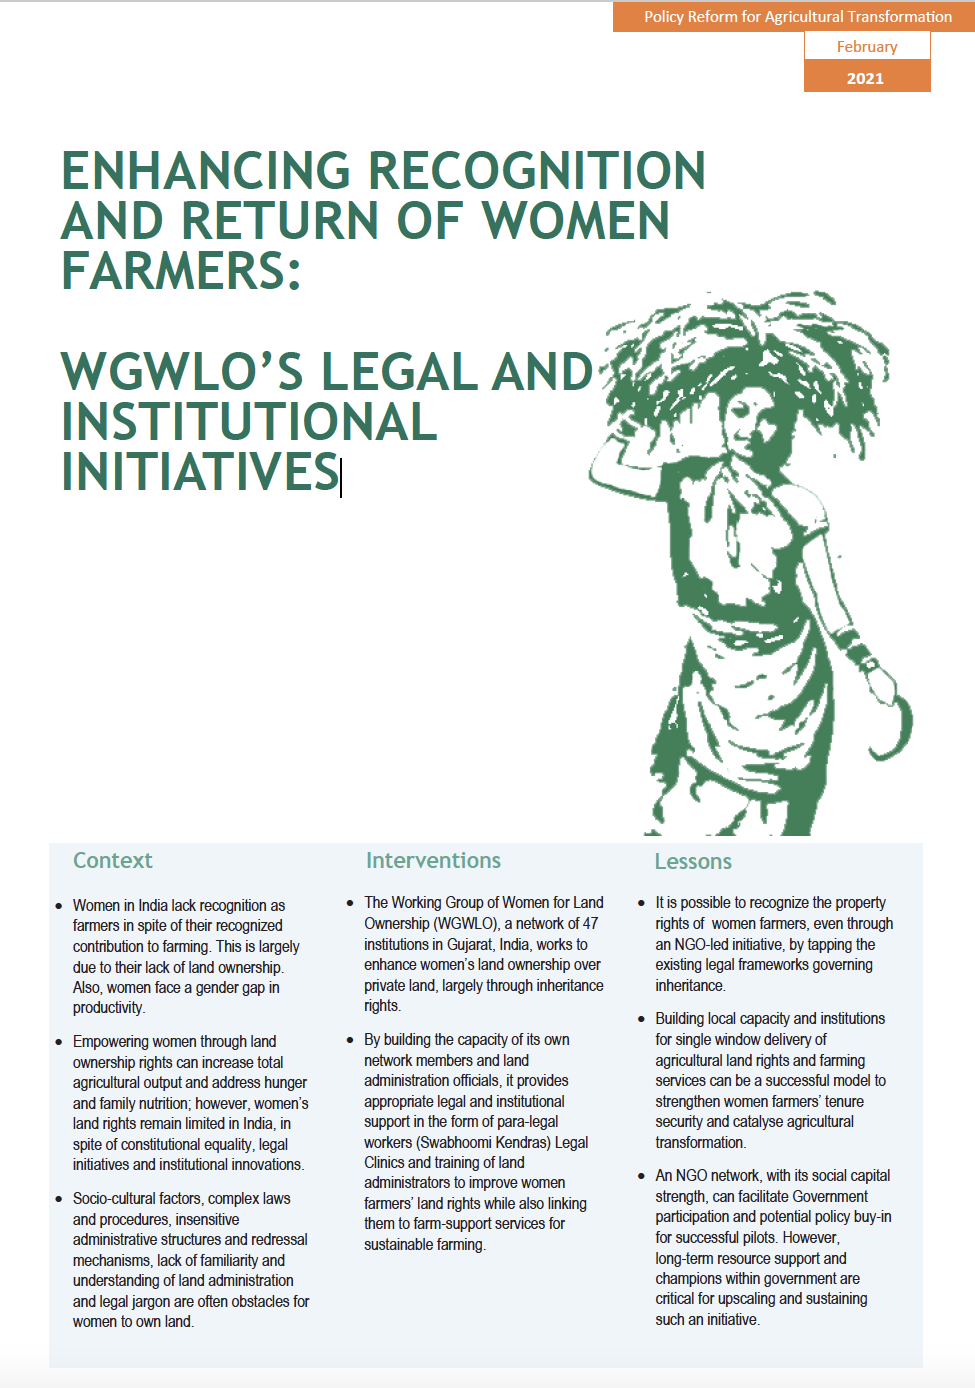 ENHANCING RECOGNITION AND RETURN OF WOMEN FARMERS: WGWLO'S LEGAL AND INSTITUTIONAL INITIATIVES